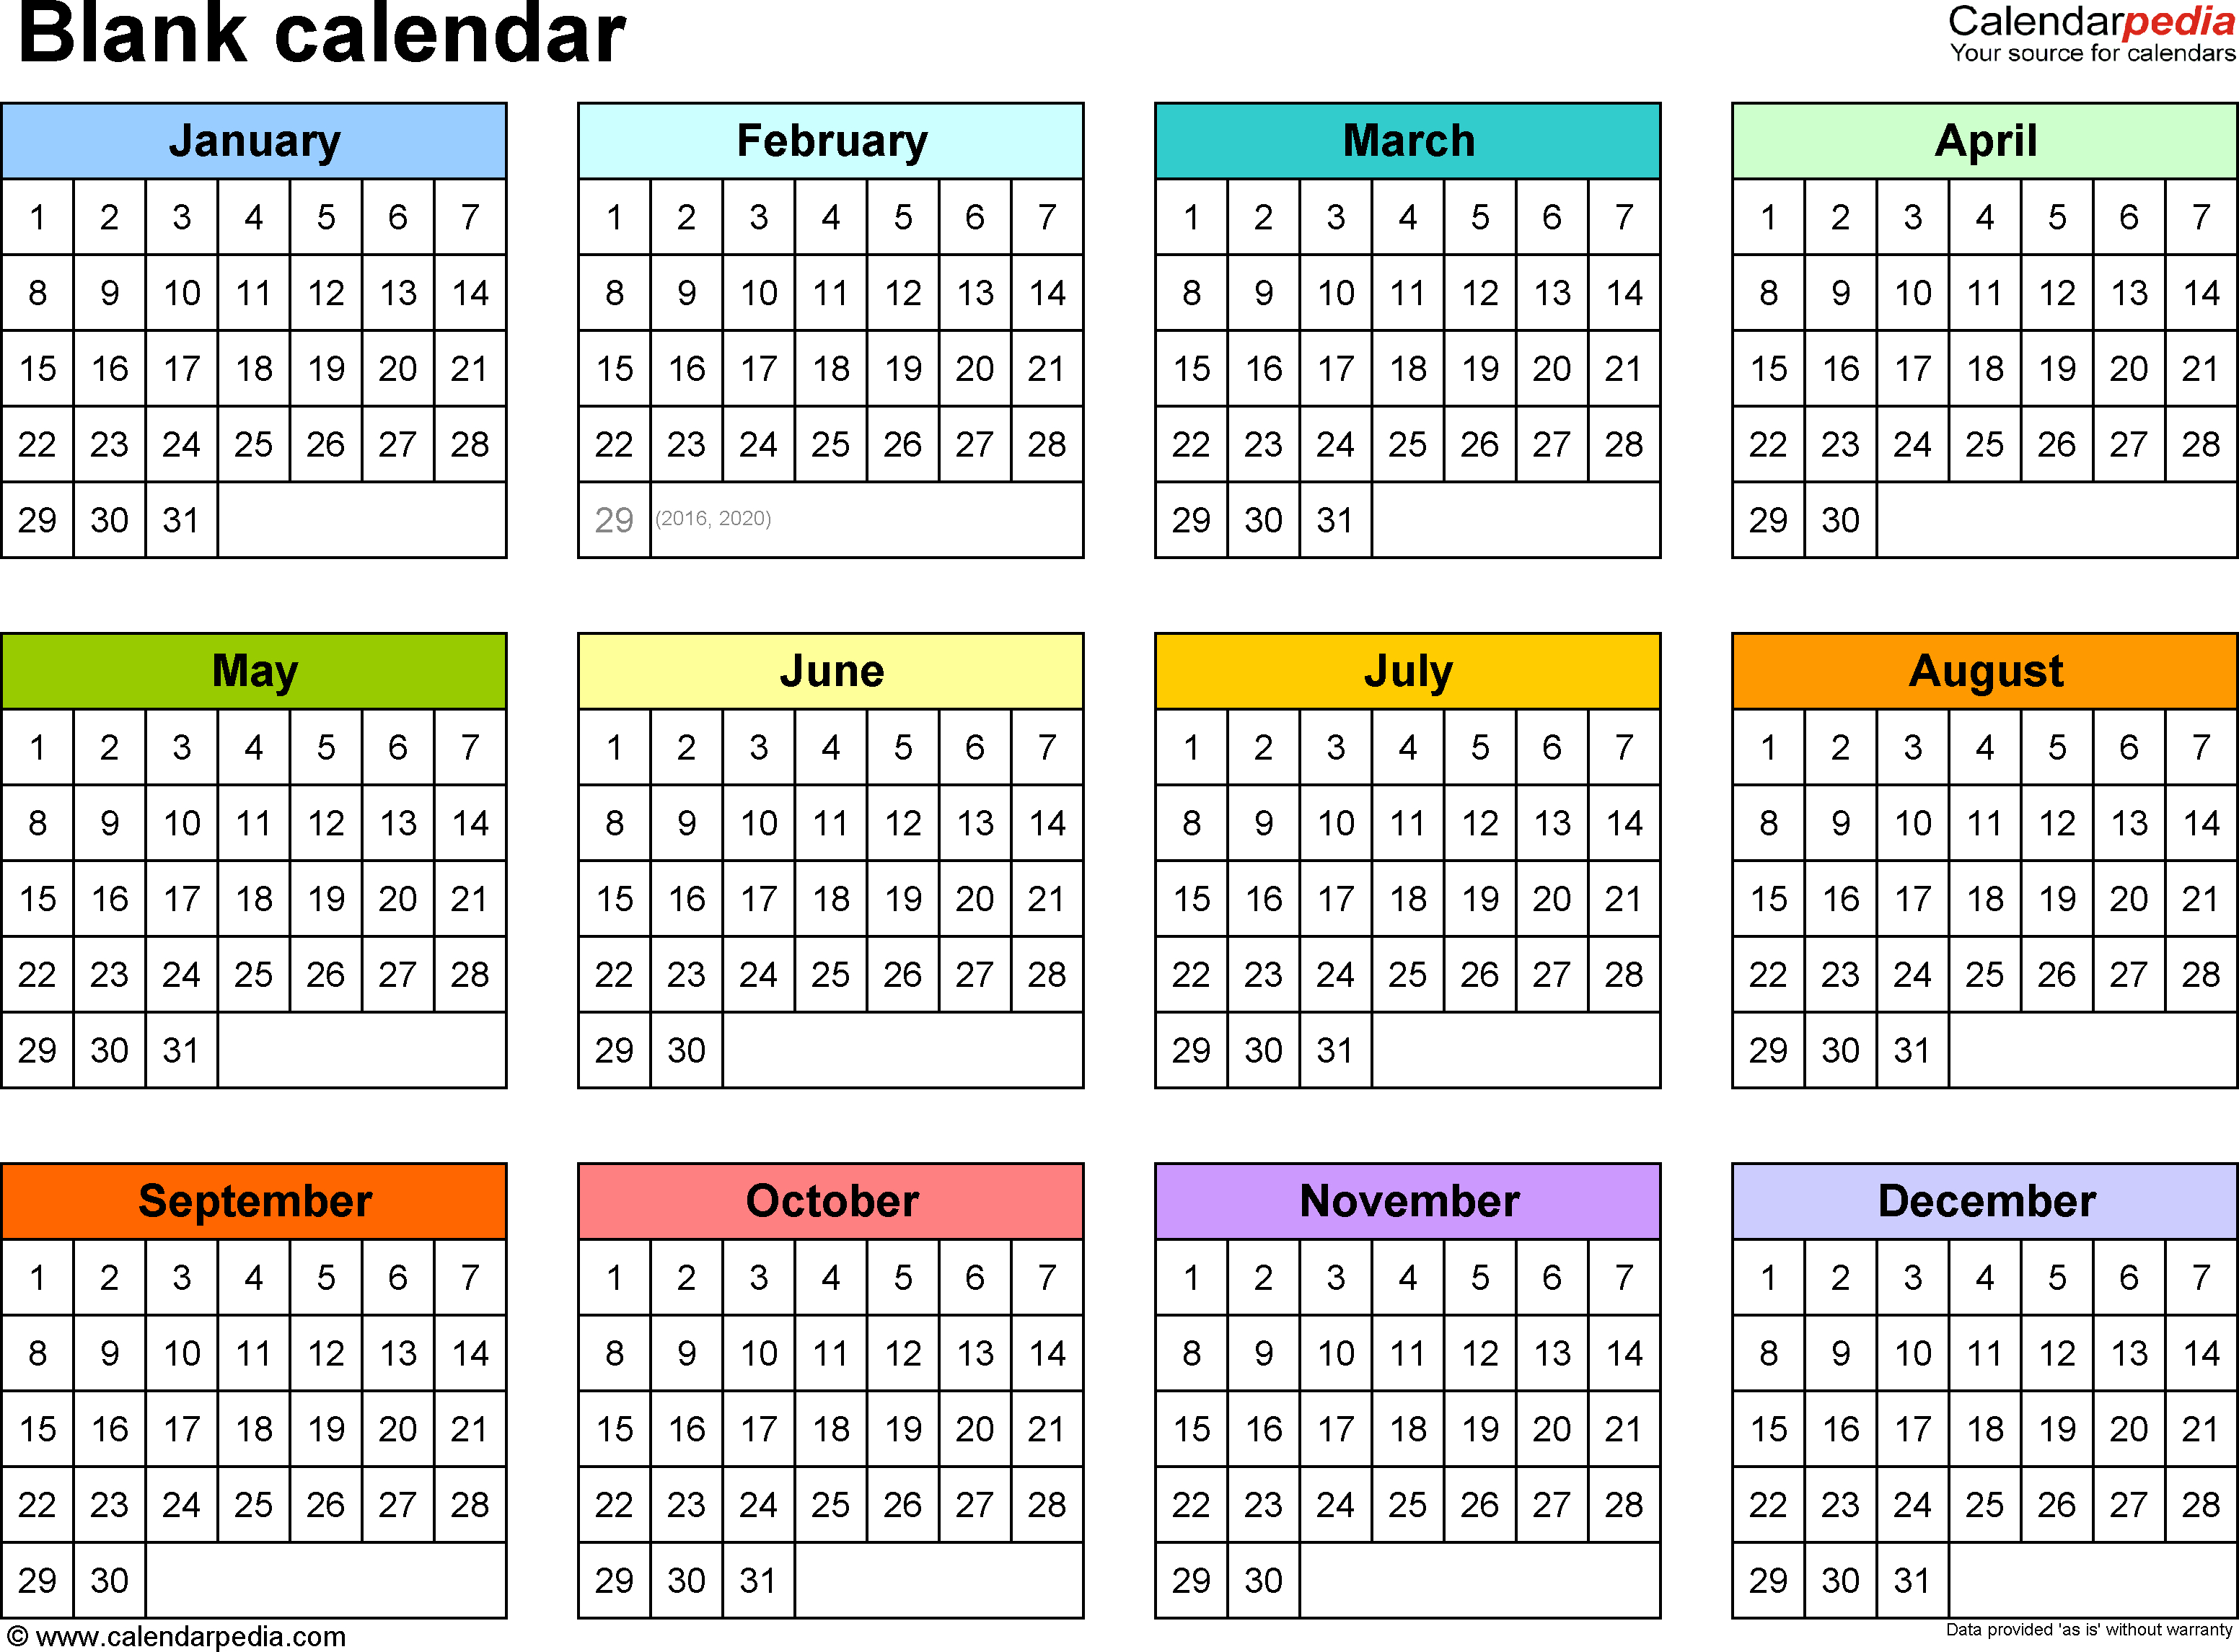 Blank Calendar - 9 Free Printable Microsoft Word Templates throughout Year At A Glance Calendar Template